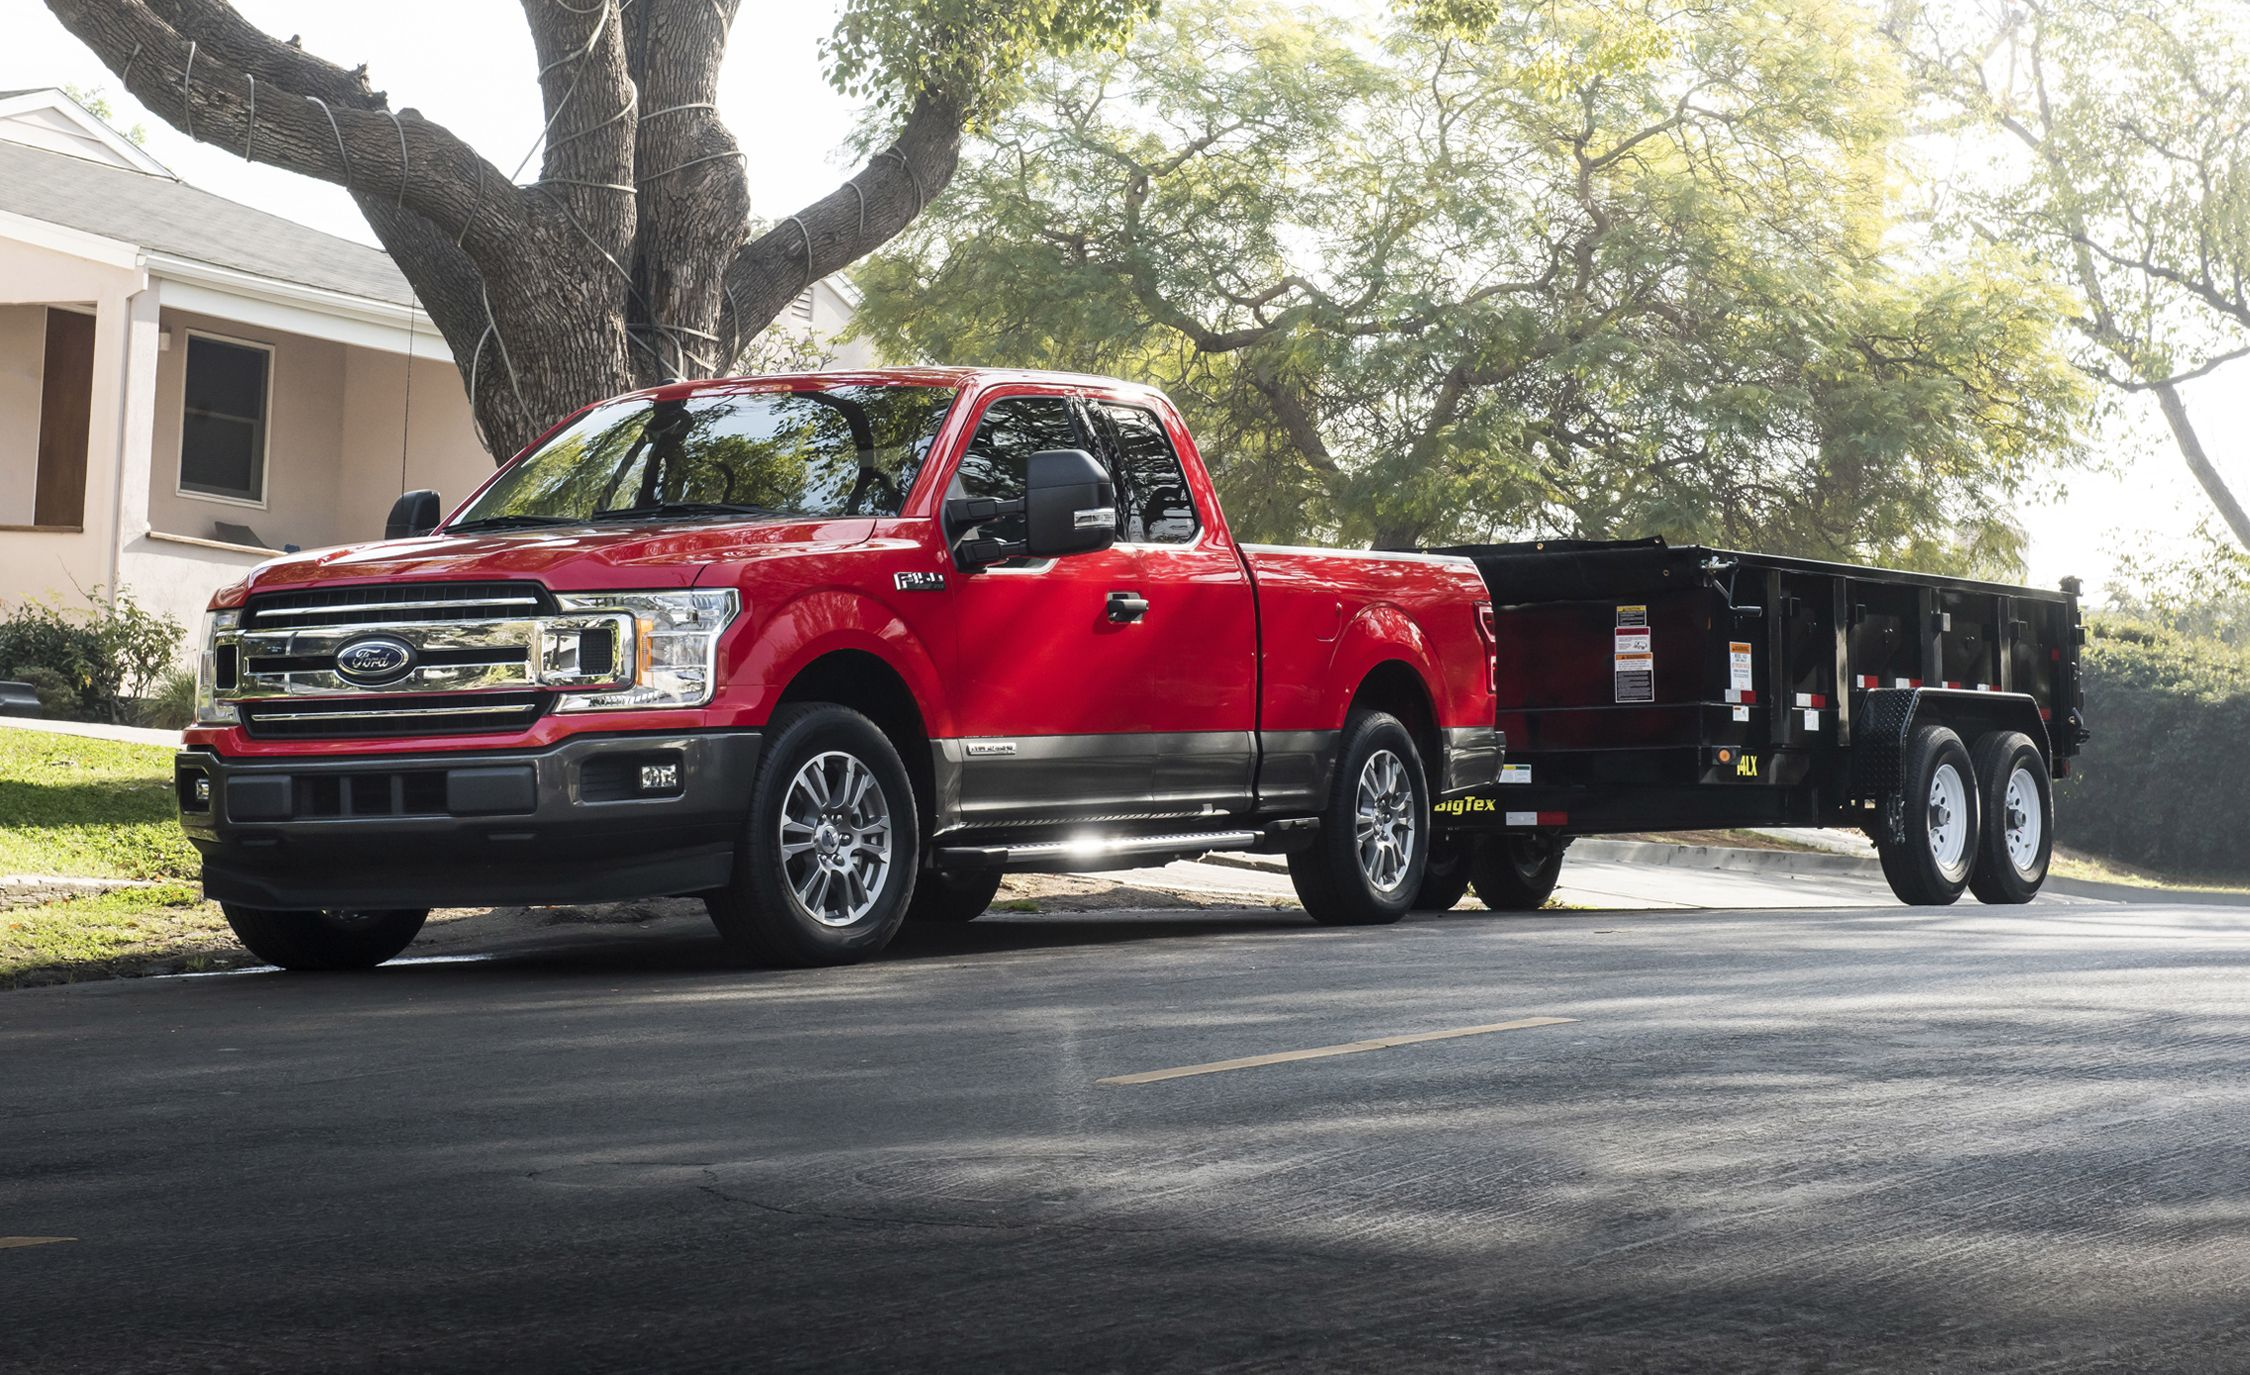 Best Used Diesel Truck >> 2018 Ford F-150 Diesel Full Details | News | Car and Driver